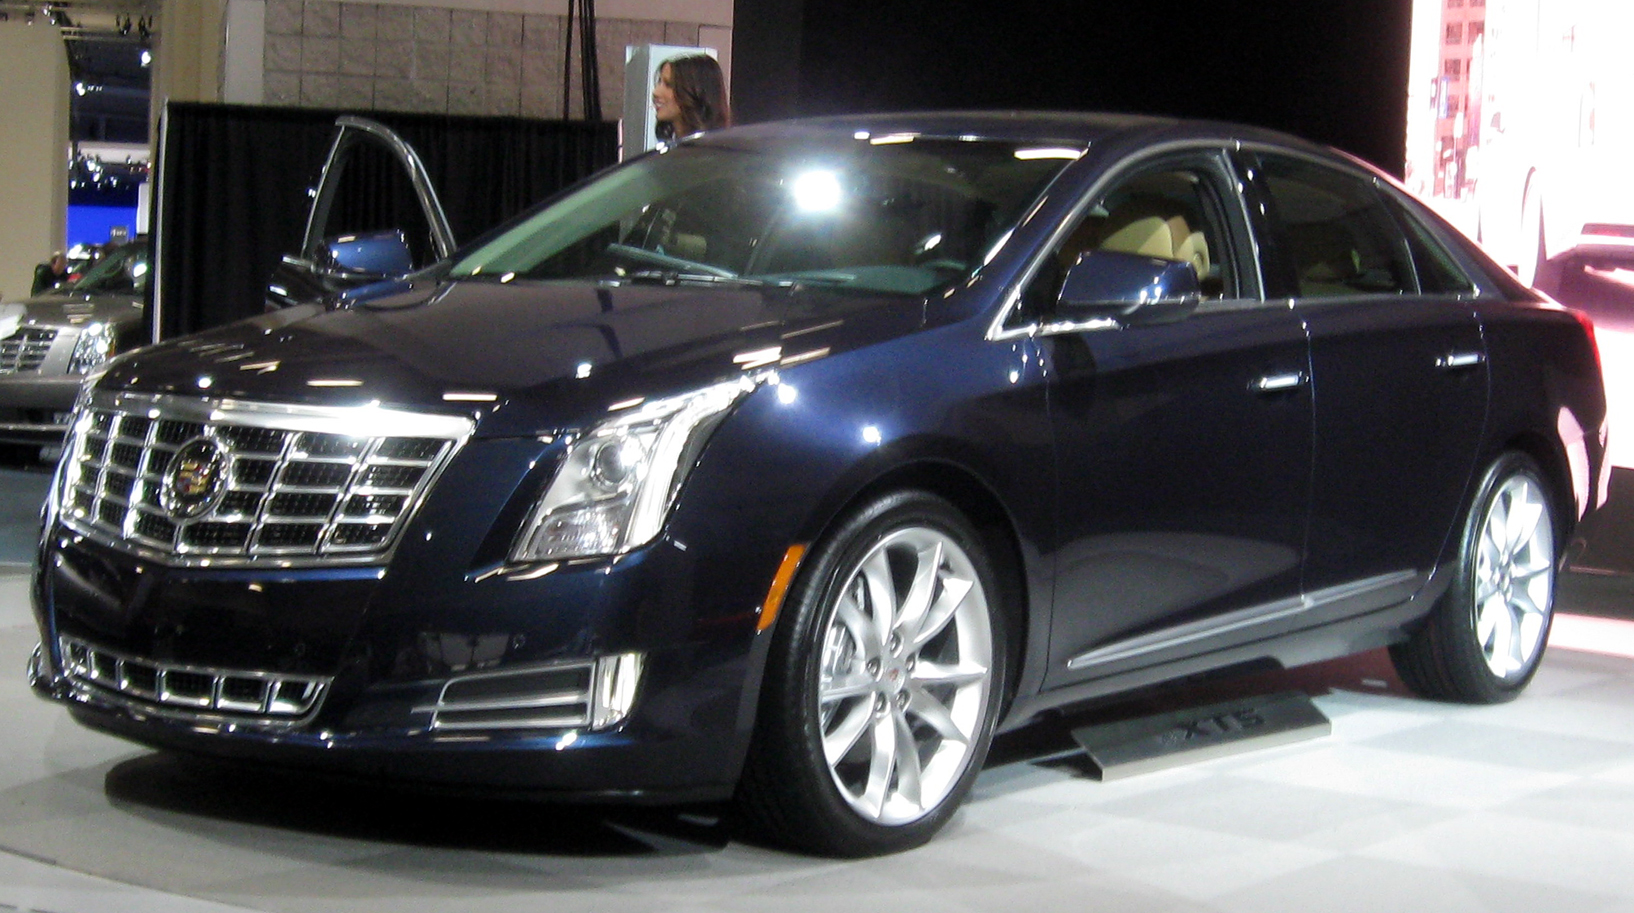 cadillac xts pictures #13